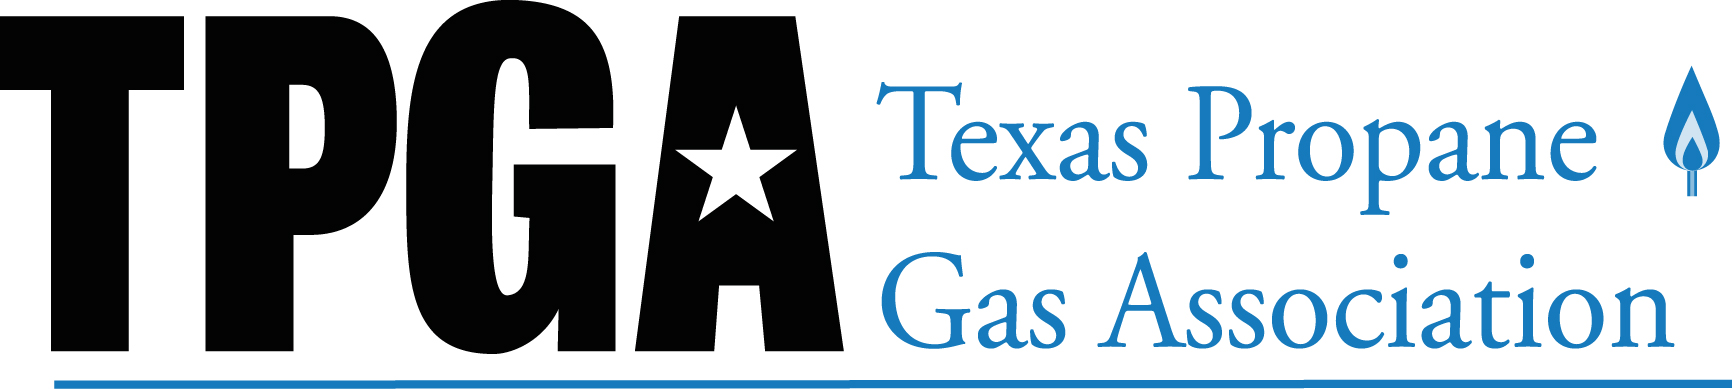 Texas Propane Gas Association